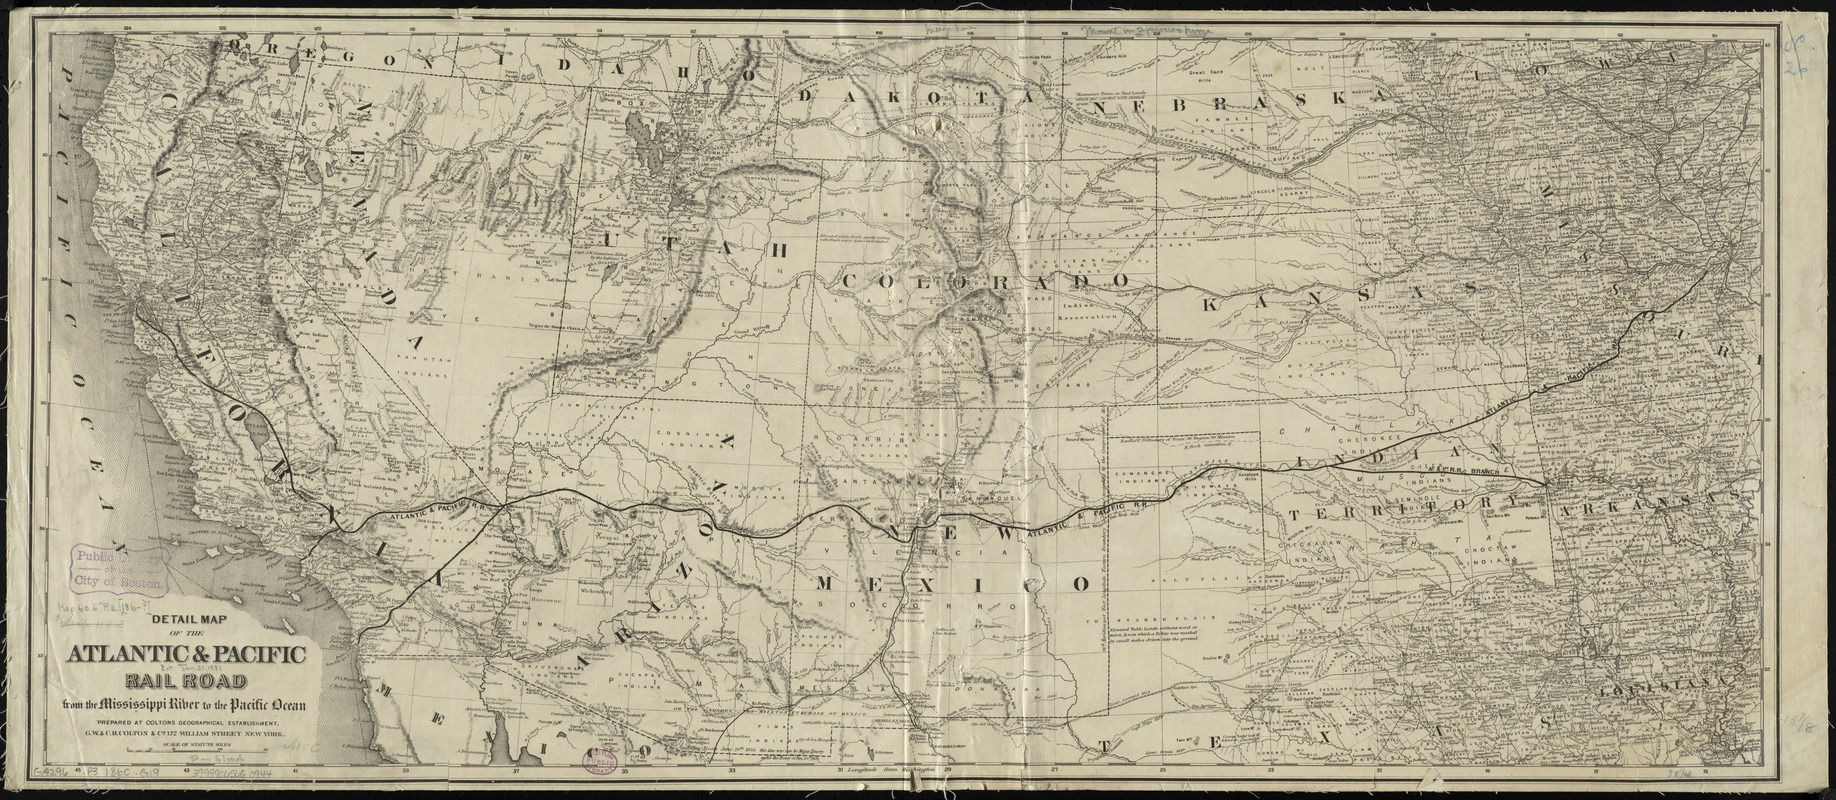 Detail map of the Atlantic & Pacific Rail Road from the Mississippi River to the Pacific Ocean